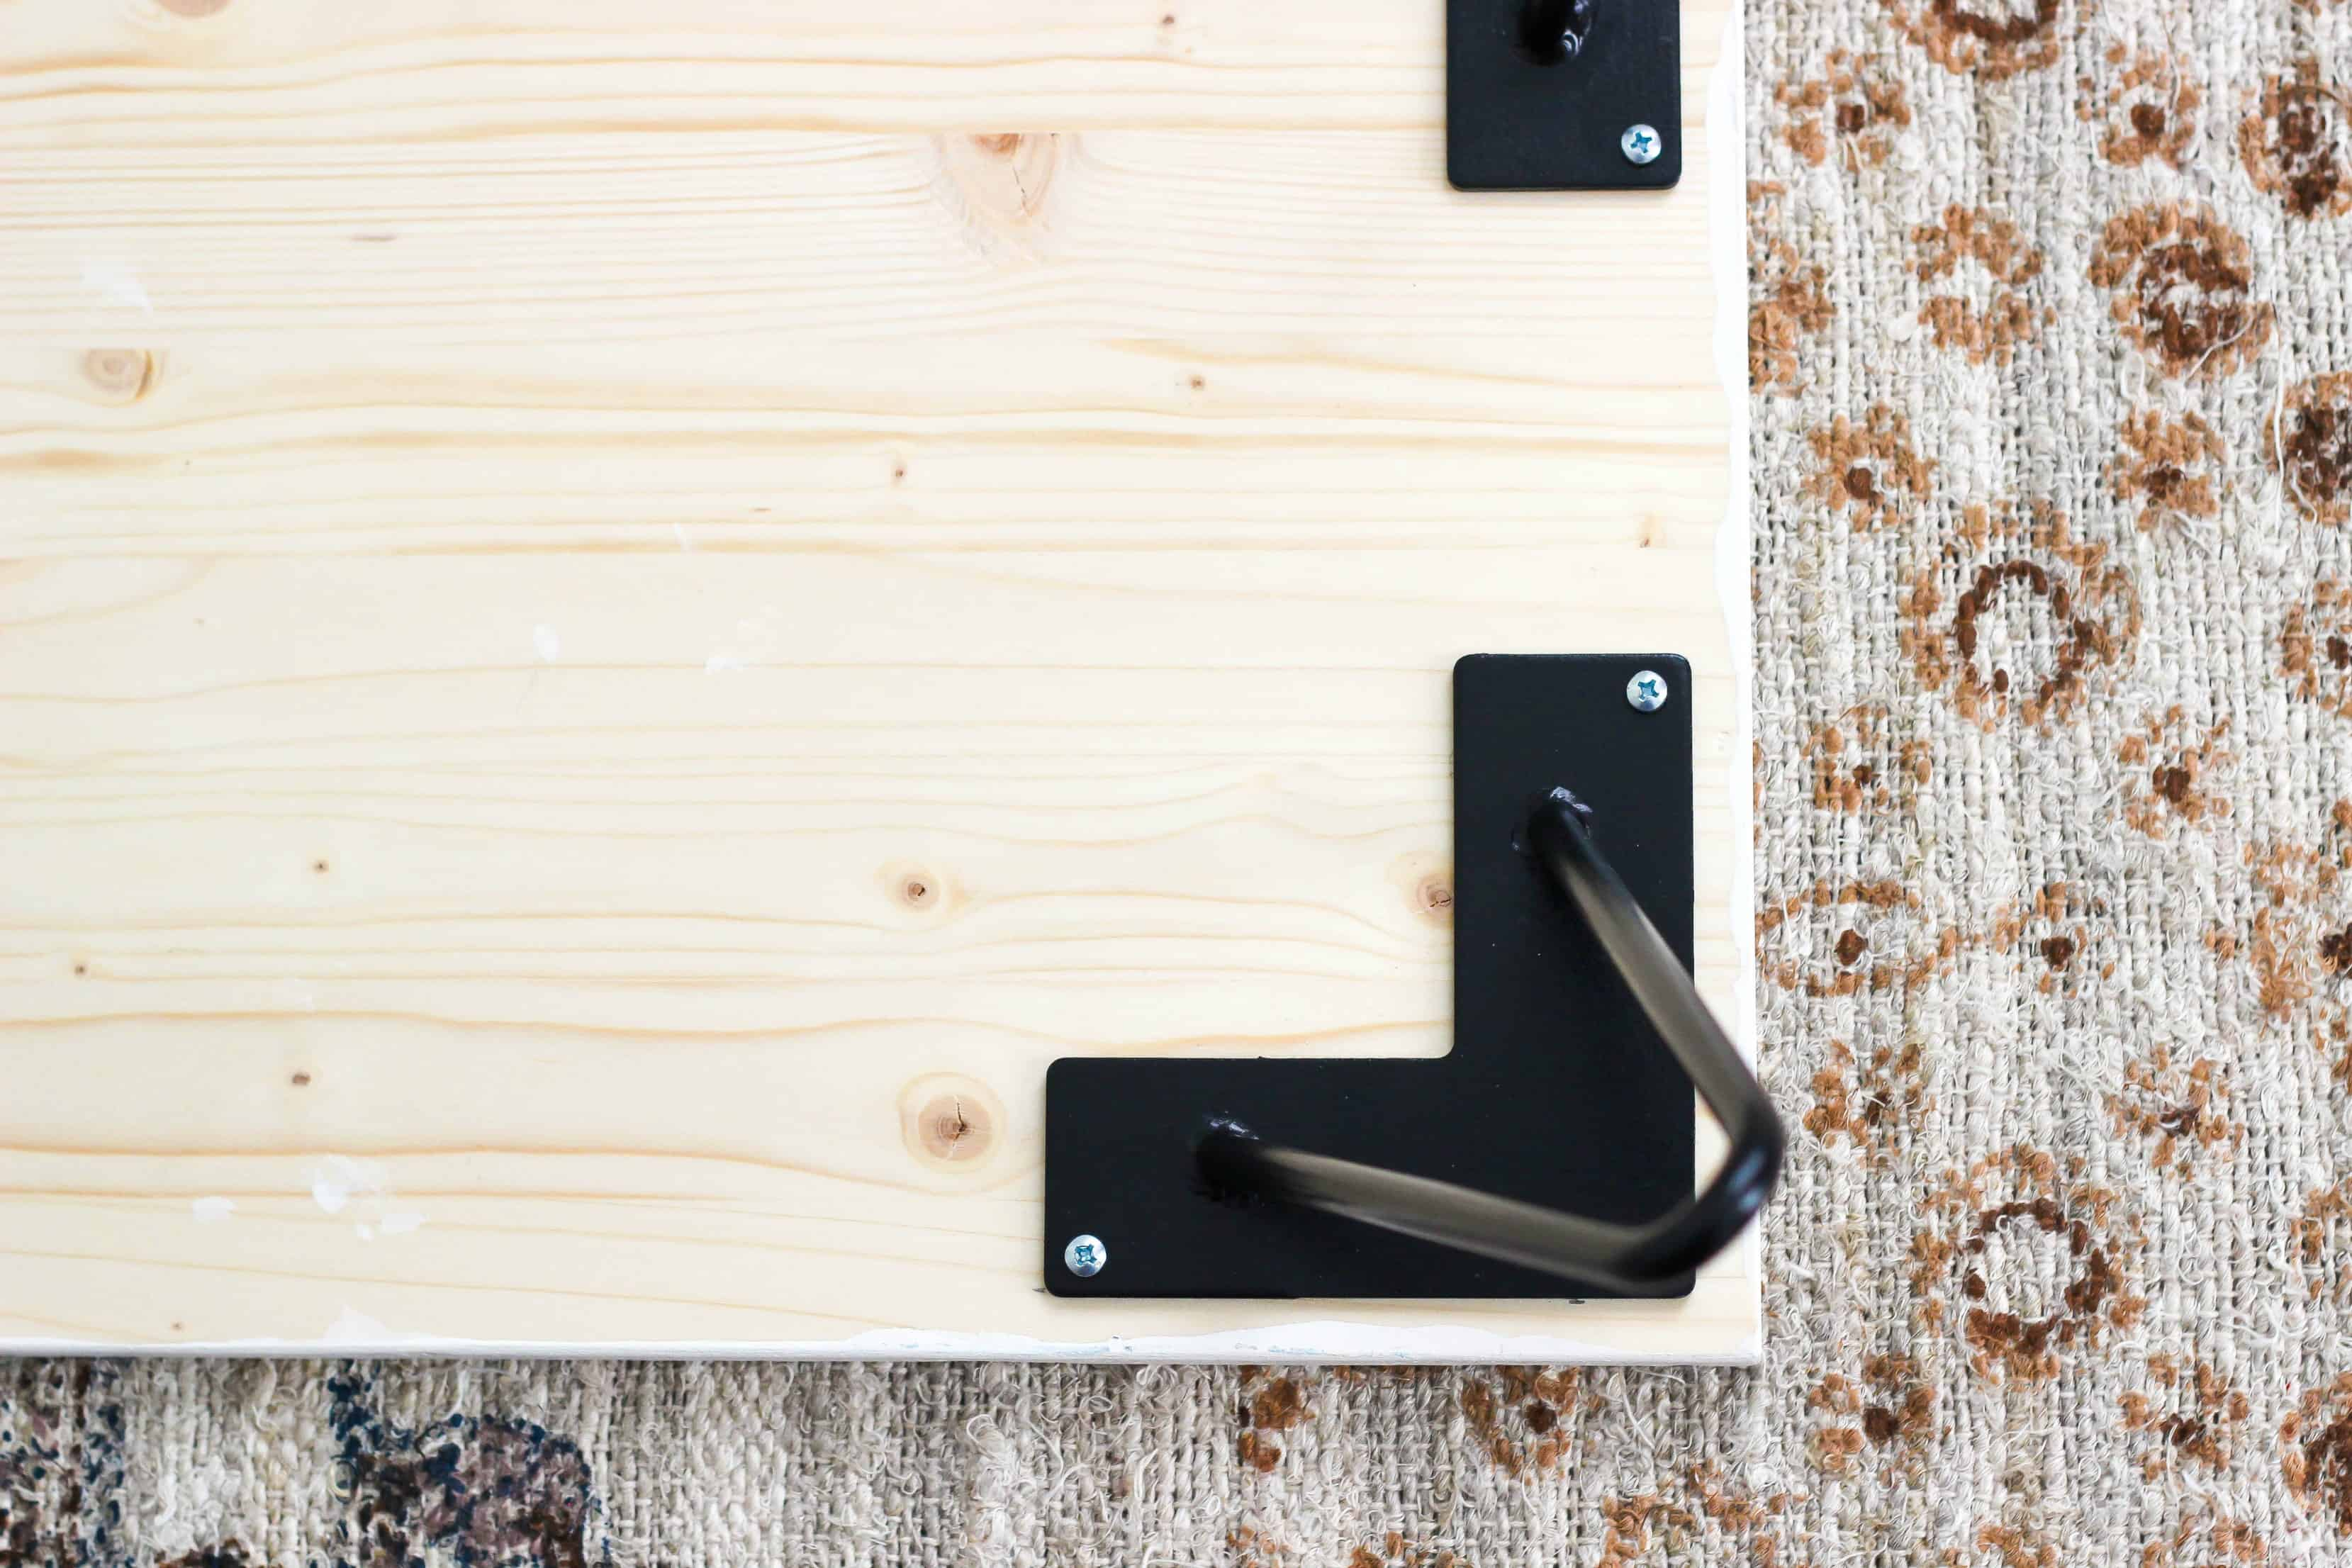 Easily make a DIY Wooden Hairpin Leg Tray with simple steps to create a functional and cozy accessory.